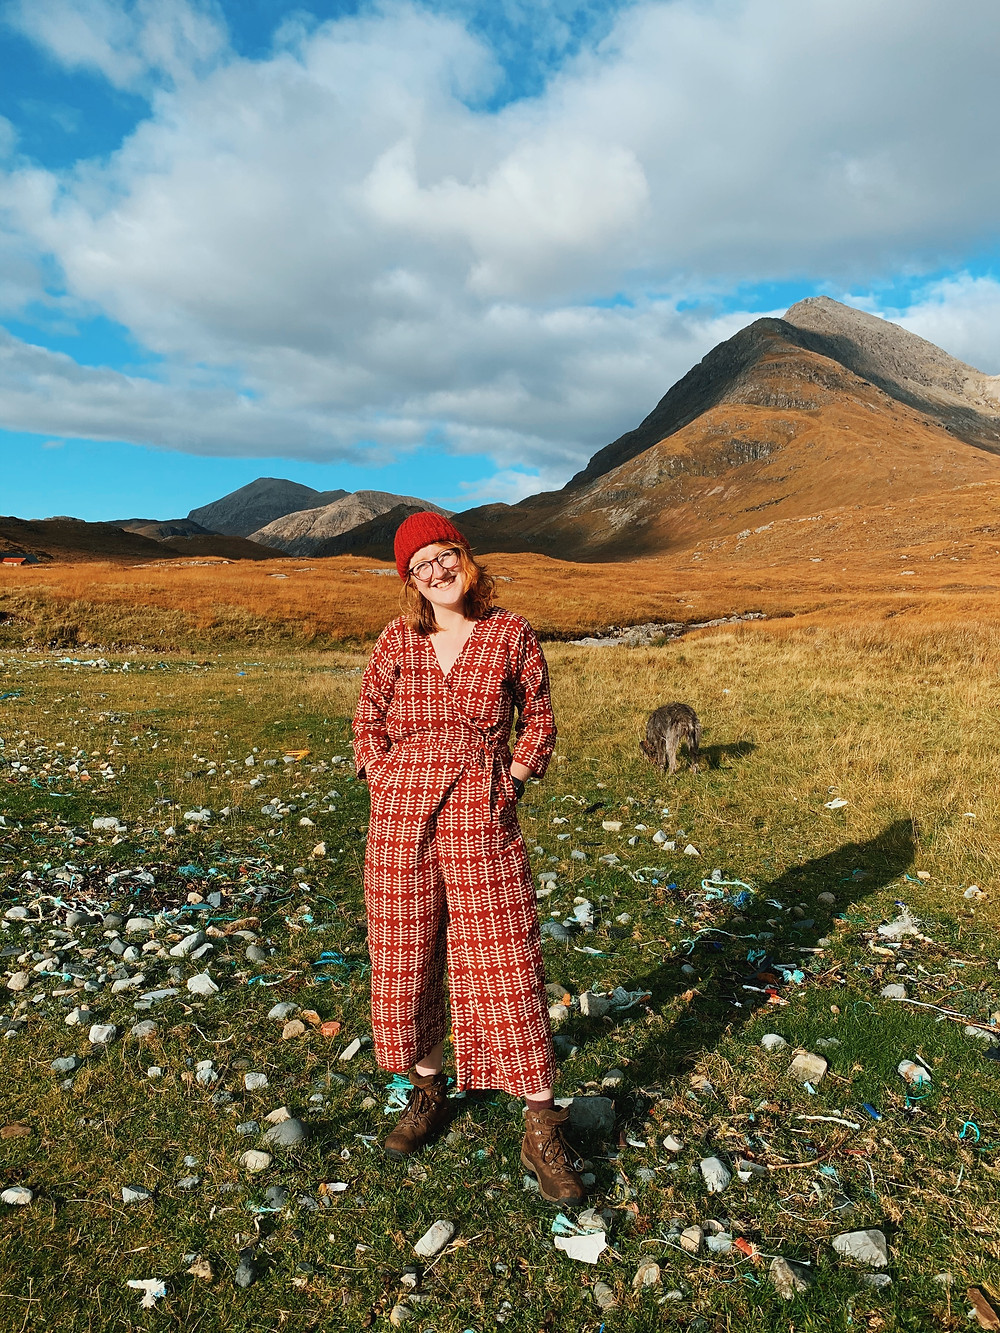 [Picture 4 - Roisin wears a Zadie Jumpsuit, made from second hand fabric and stands in a wide Scottish Landscape, all the colours of autumn. She wears a bright red wool hat and walking boots.]